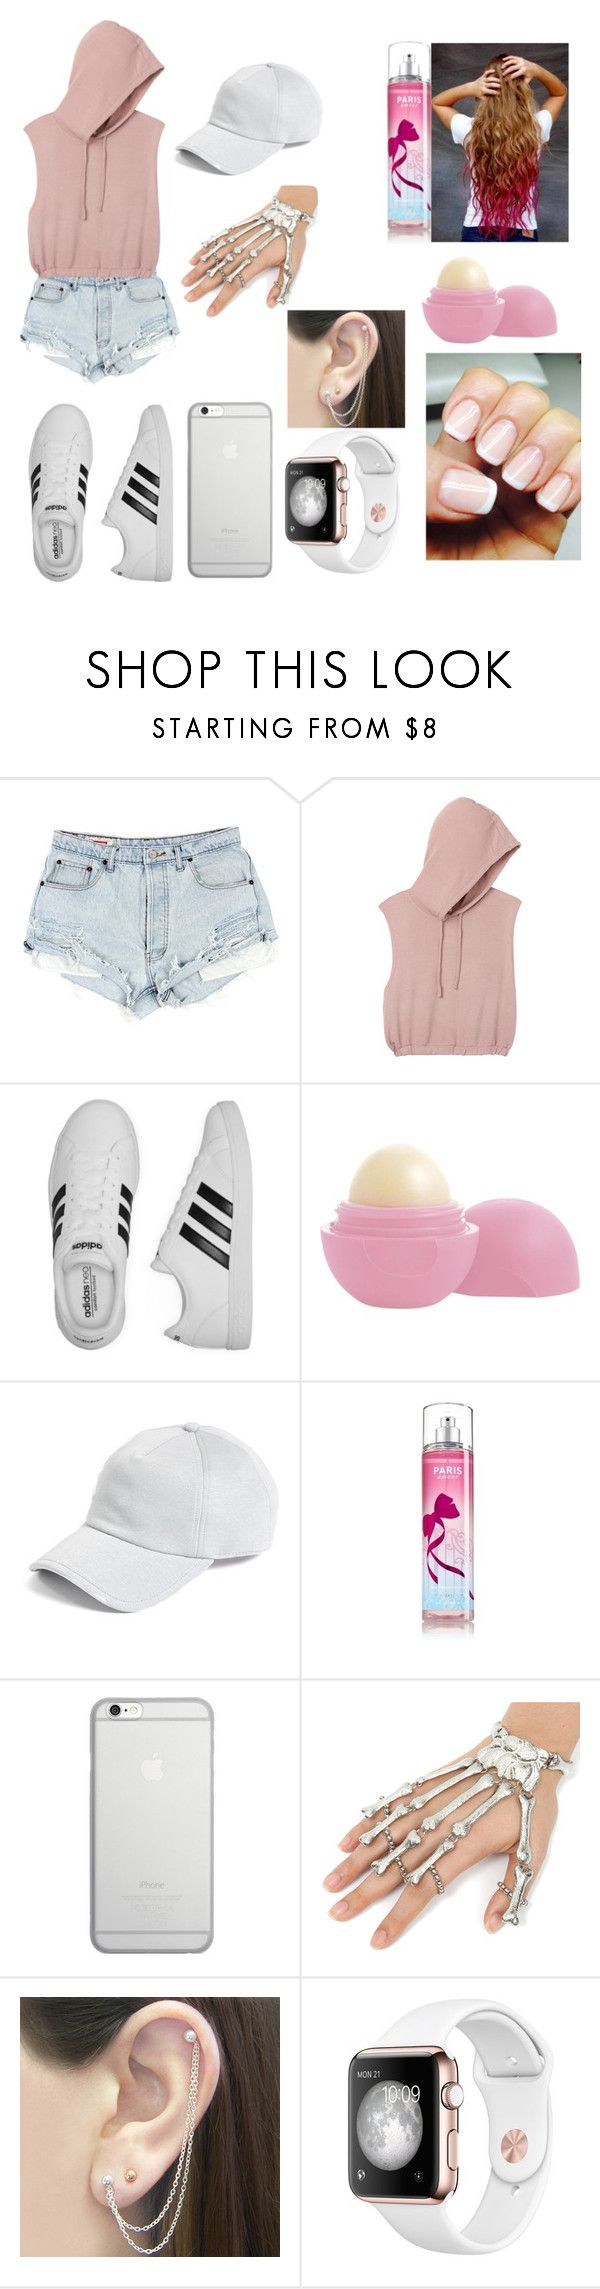 """Untitled #118"" by diamond139 ❤ liked on Polyvore featuring beauty, RVCA, adidas, Eos, rag & bone, Native Union and Otis Jaxon"